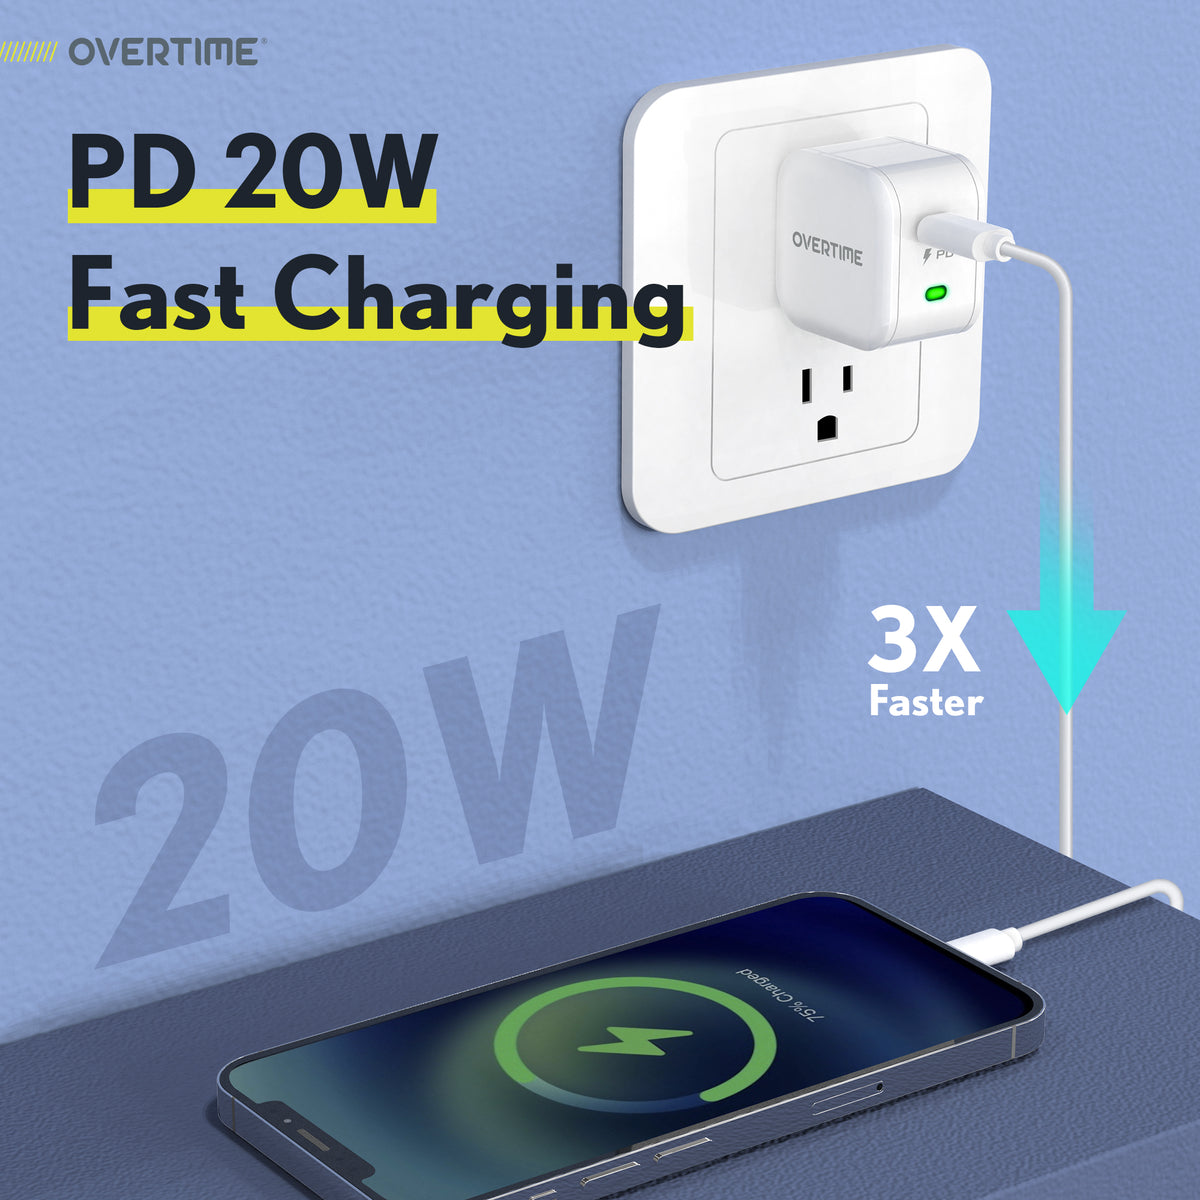 Type-C Charger, 20W Fast Charger for iPhone and Android PD 3.0 – White (2-Pack)